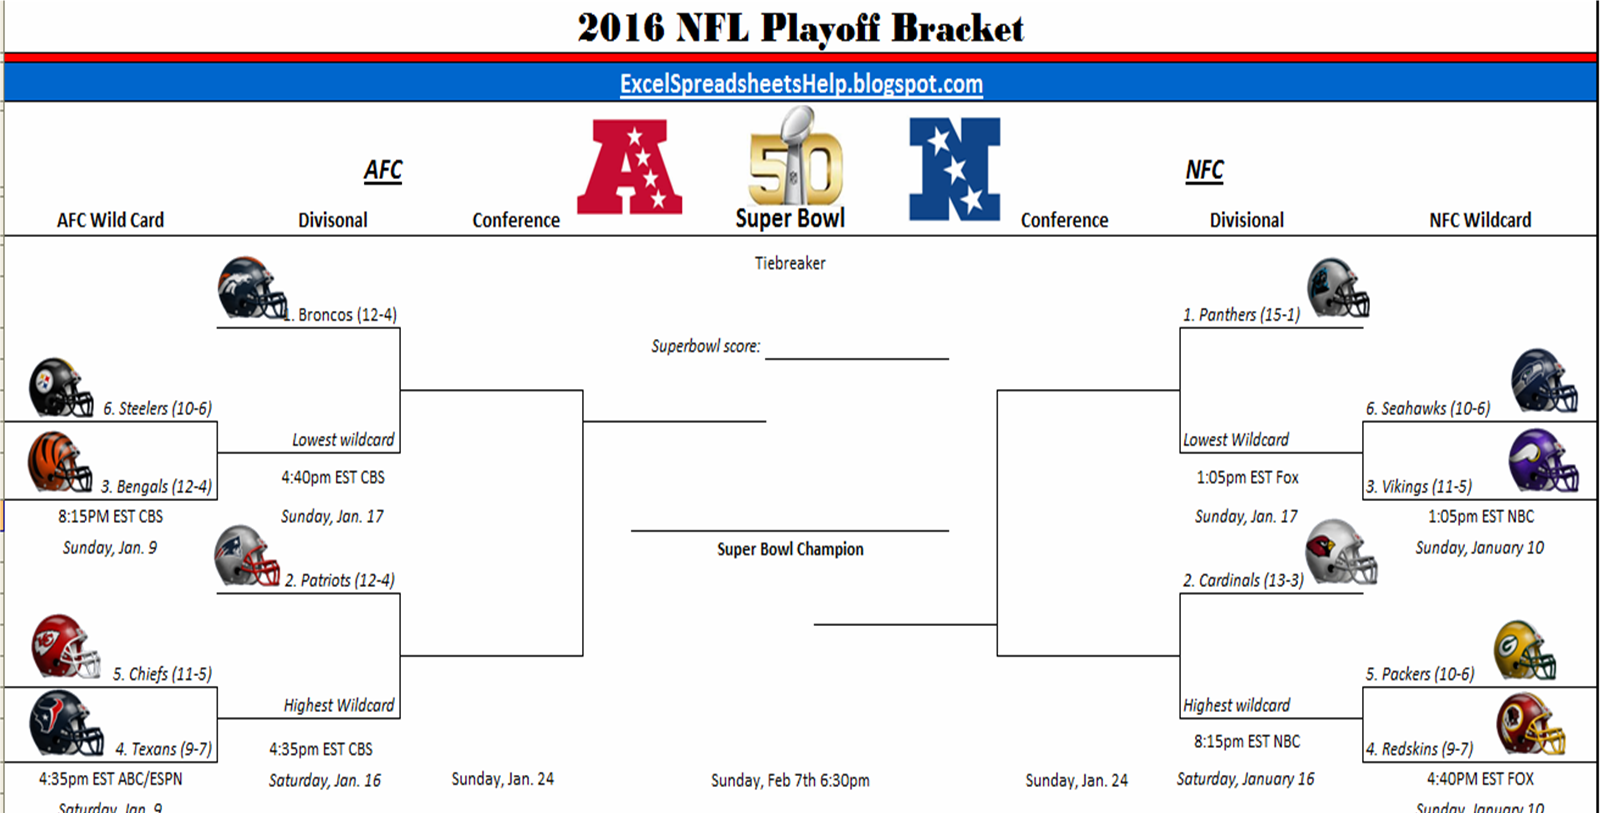 image regarding Nfl Playoff Bracket Printable named Excel Spreadsheets Assist: Printable 2016 NFL Playoff Bracket